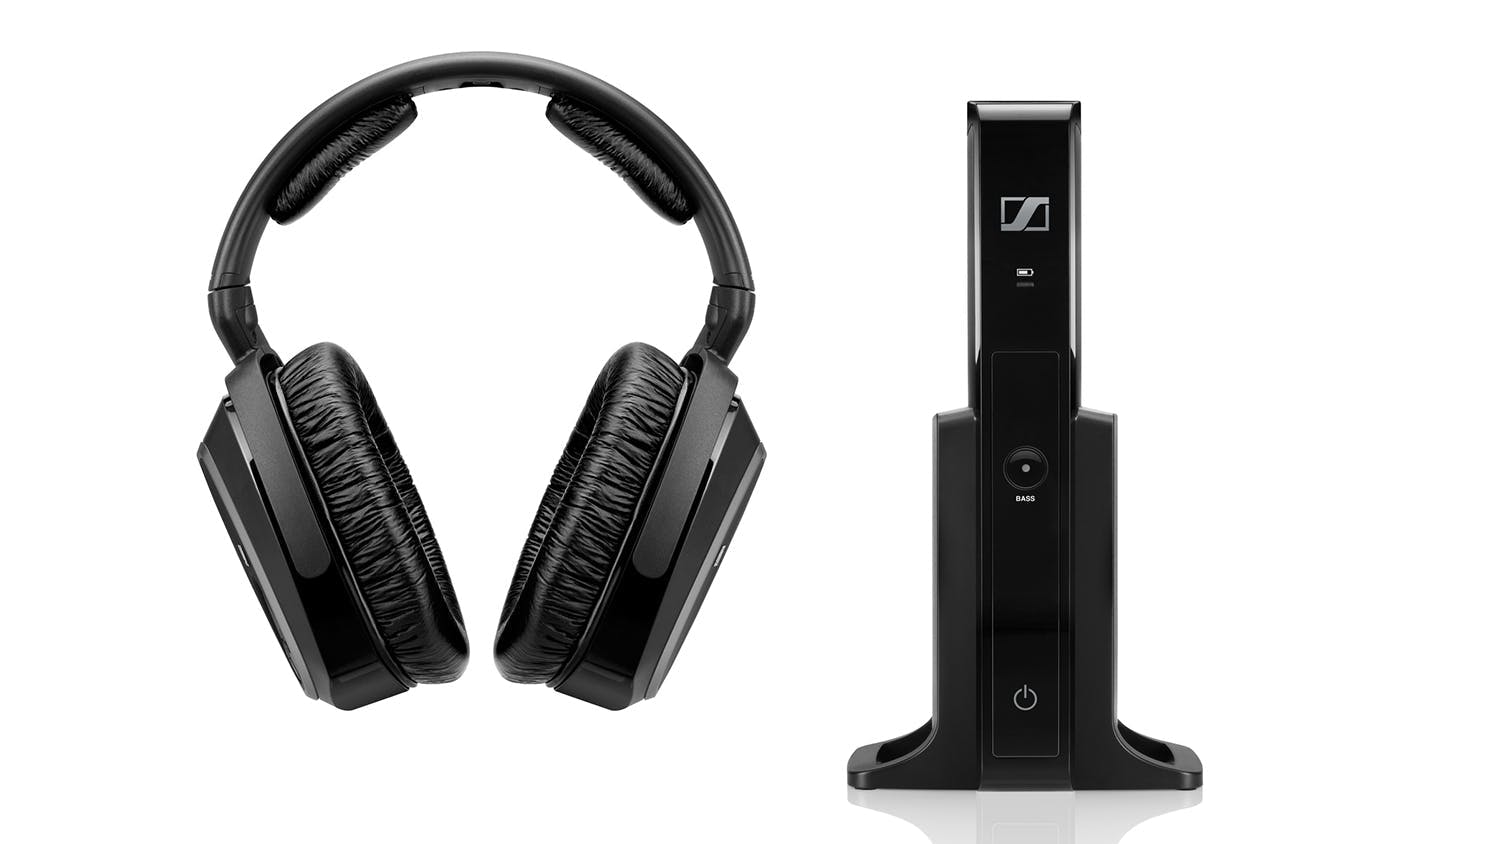 Sennheiser RS 165 Wireless Over-Ear Headphones